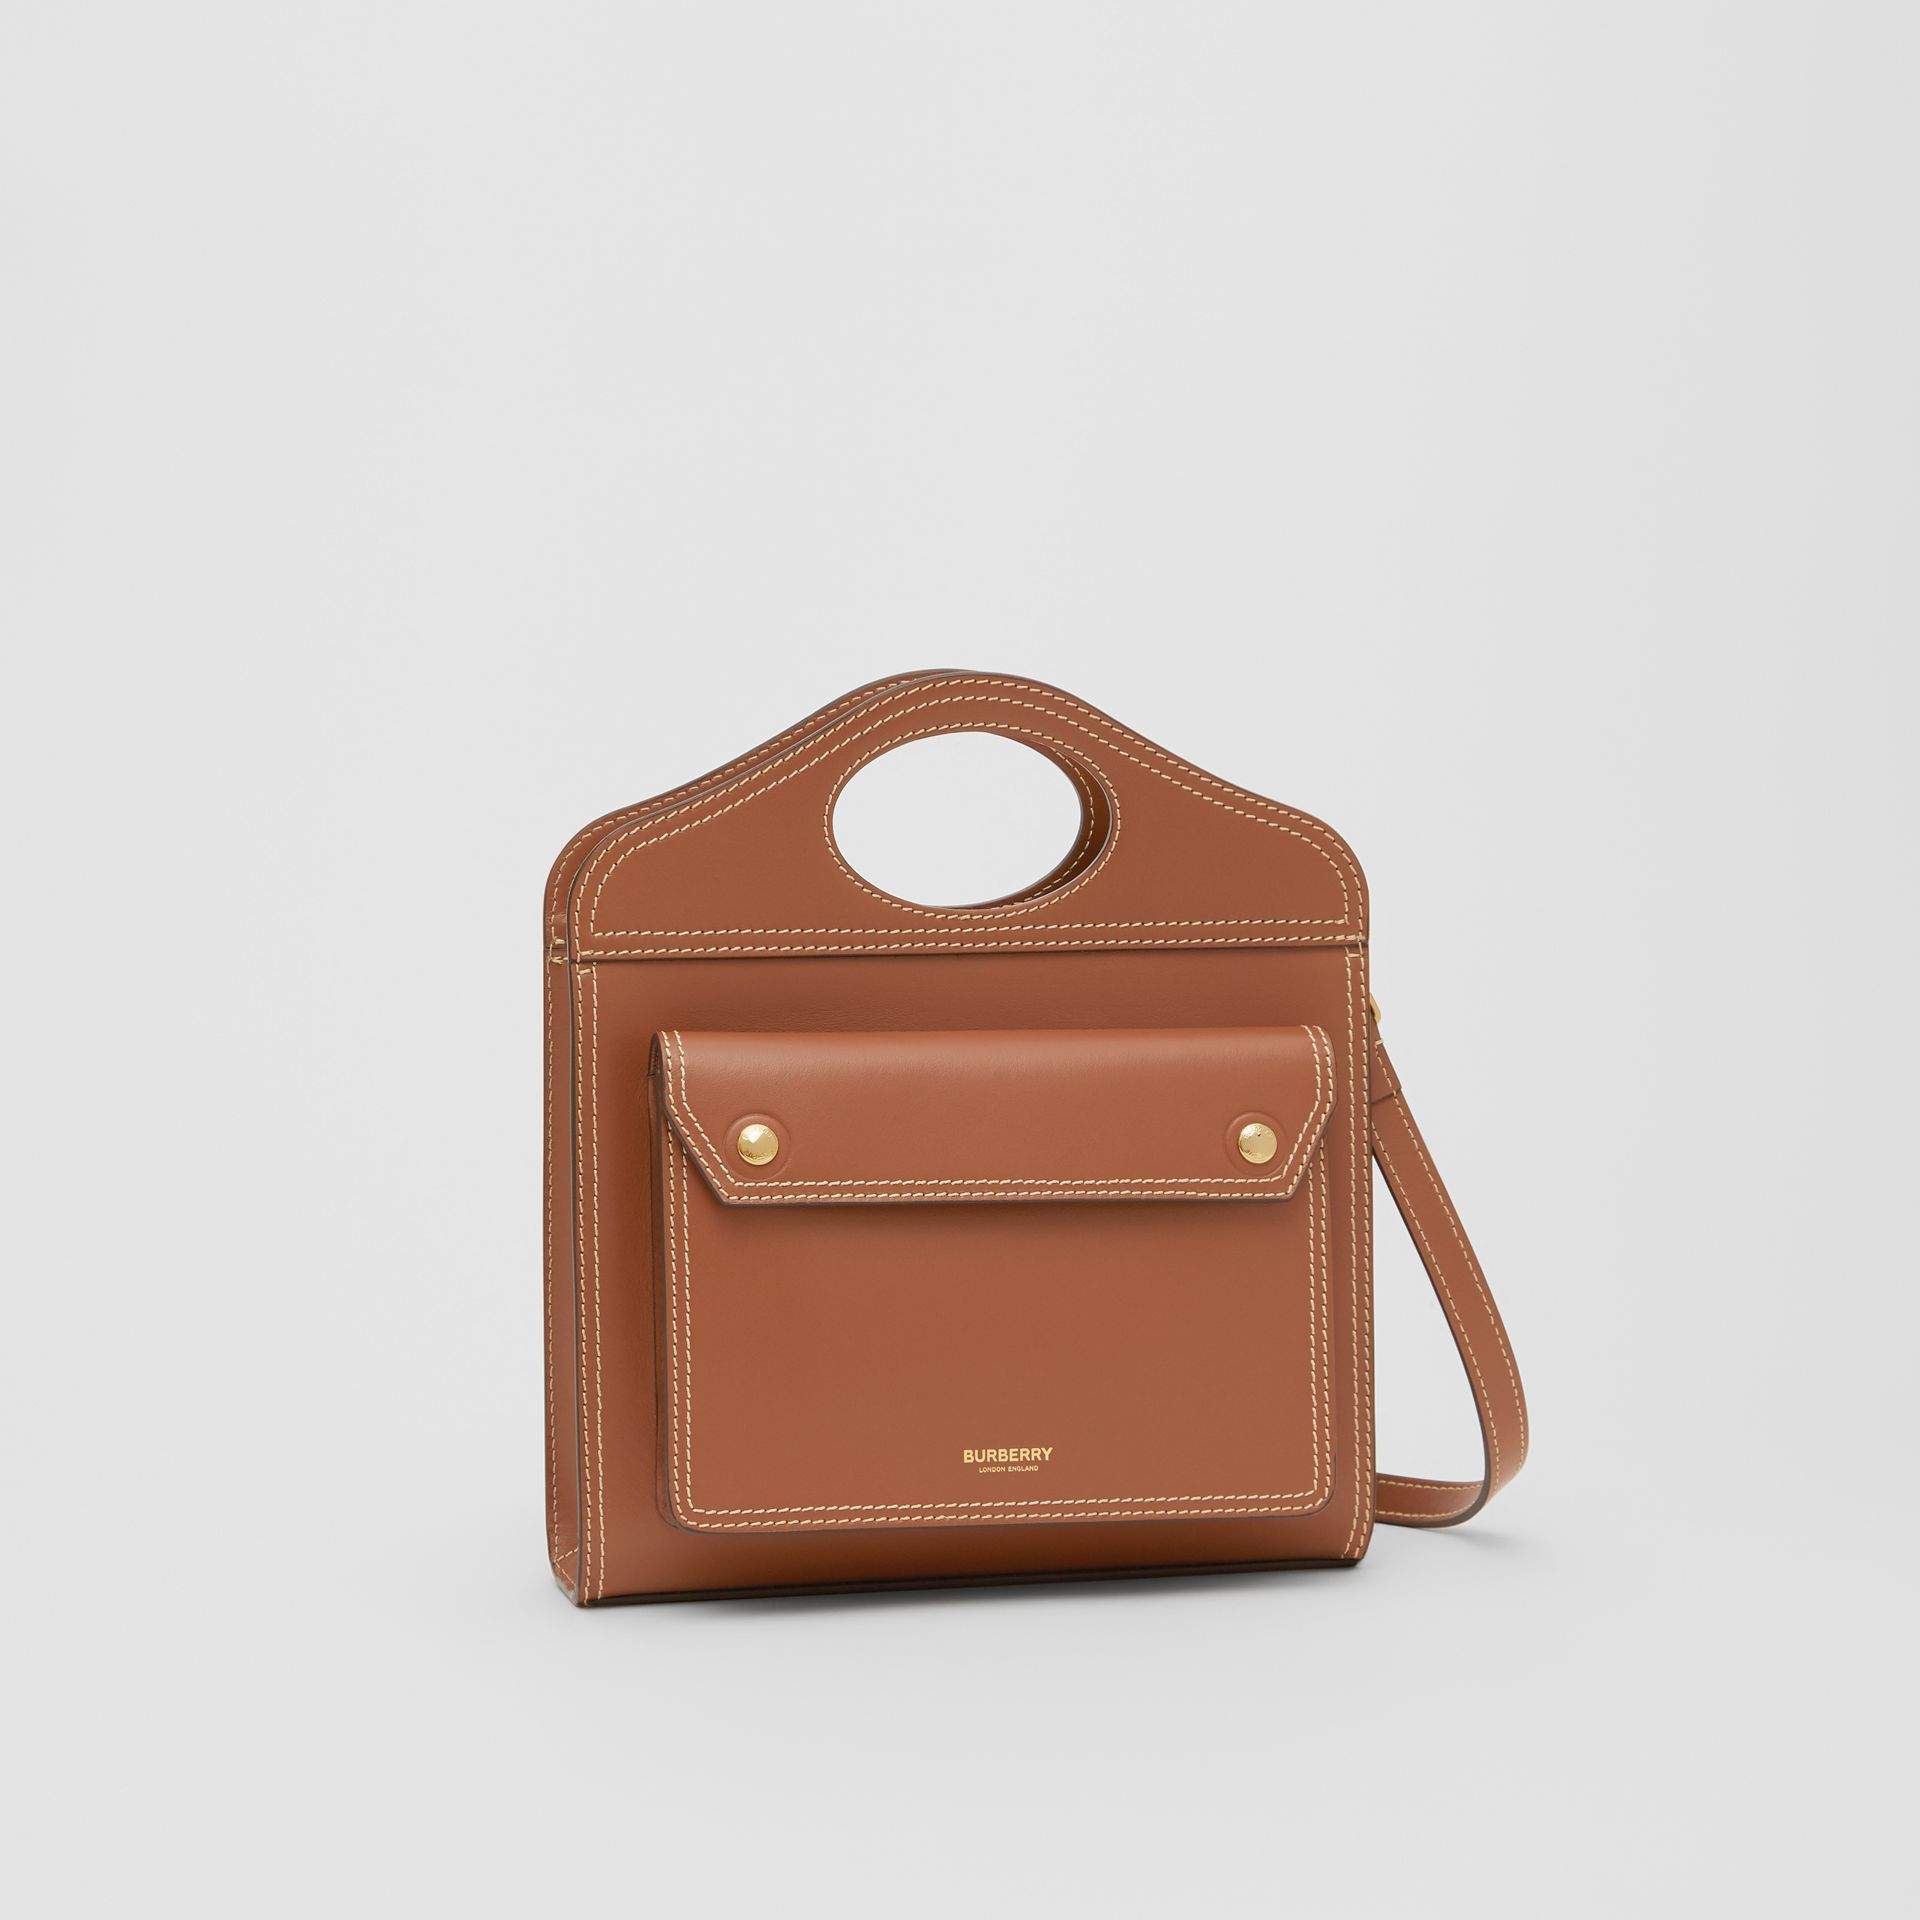 Mini Topstitched Leather Pocket Bag in Malt Brown - Women | Burberry - gallery image 5